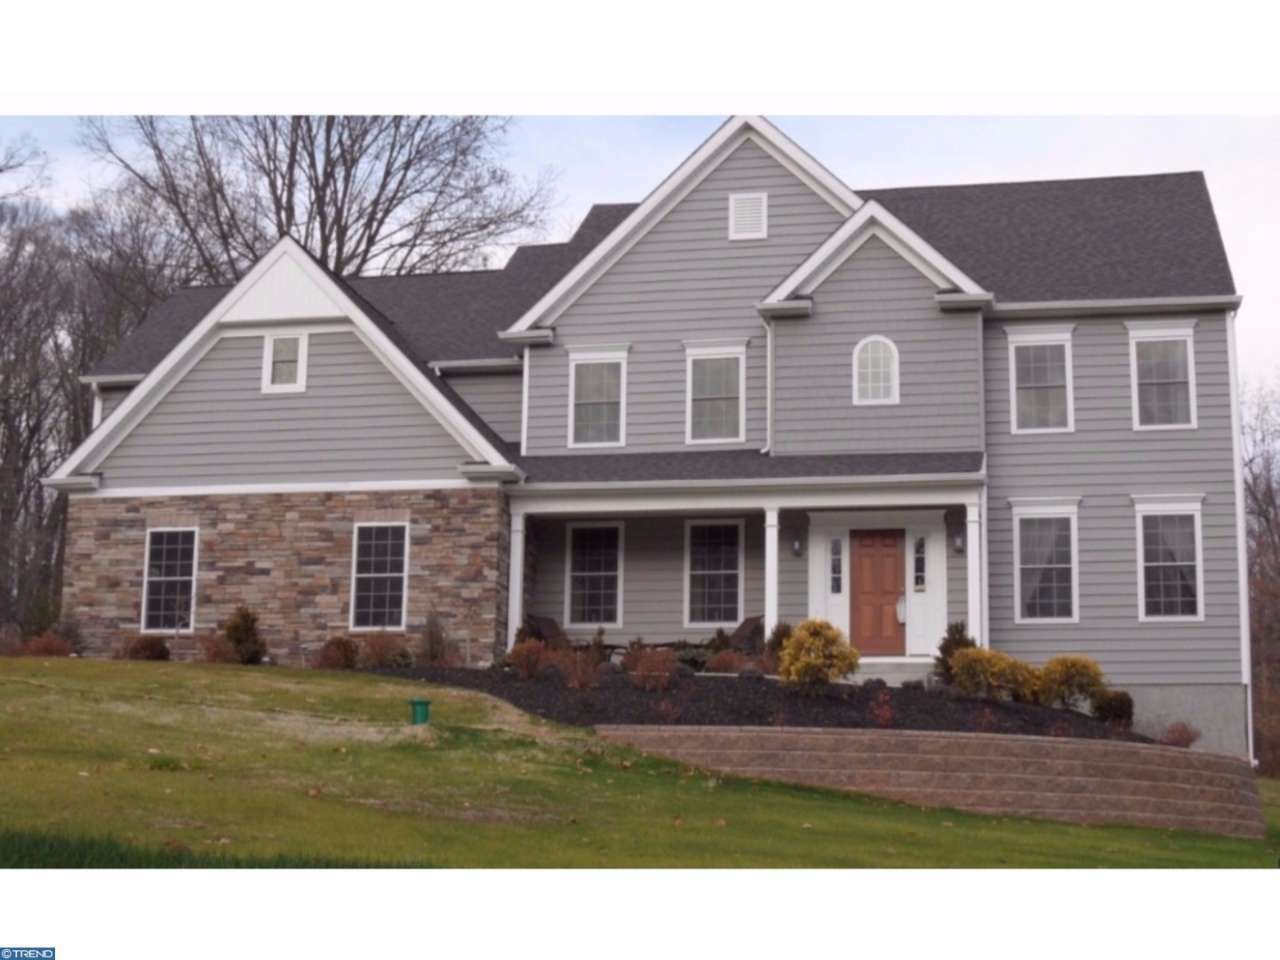 4240 Applebutter Rd, Doylestown, PA - USA (photo 1)